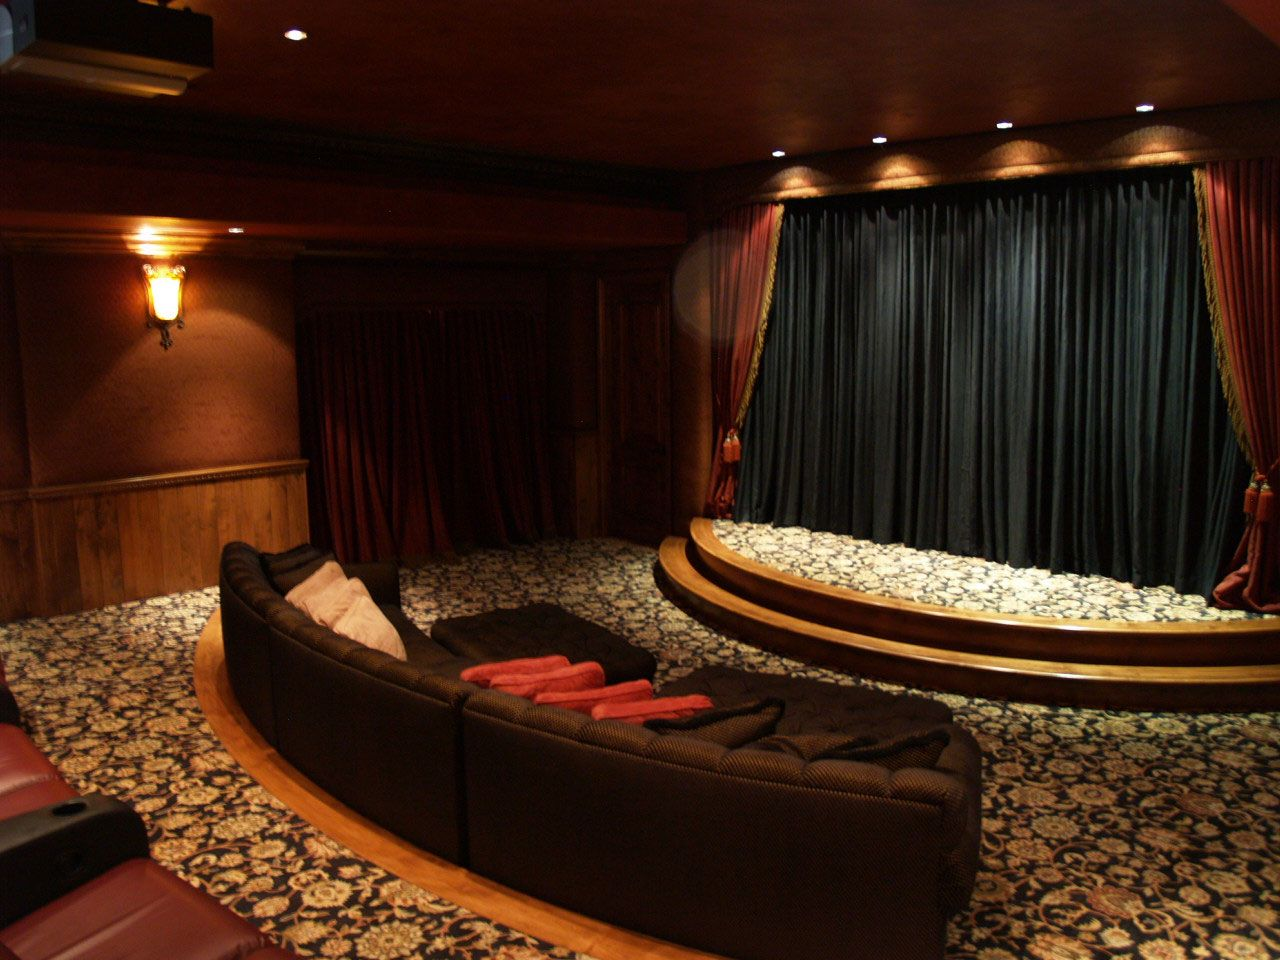 Like That Comfy Looking Couch Curvaceously Positioned At The Front Also The Stage Is Perfect For Family Performan Home Theater Design Home Home Entertainment